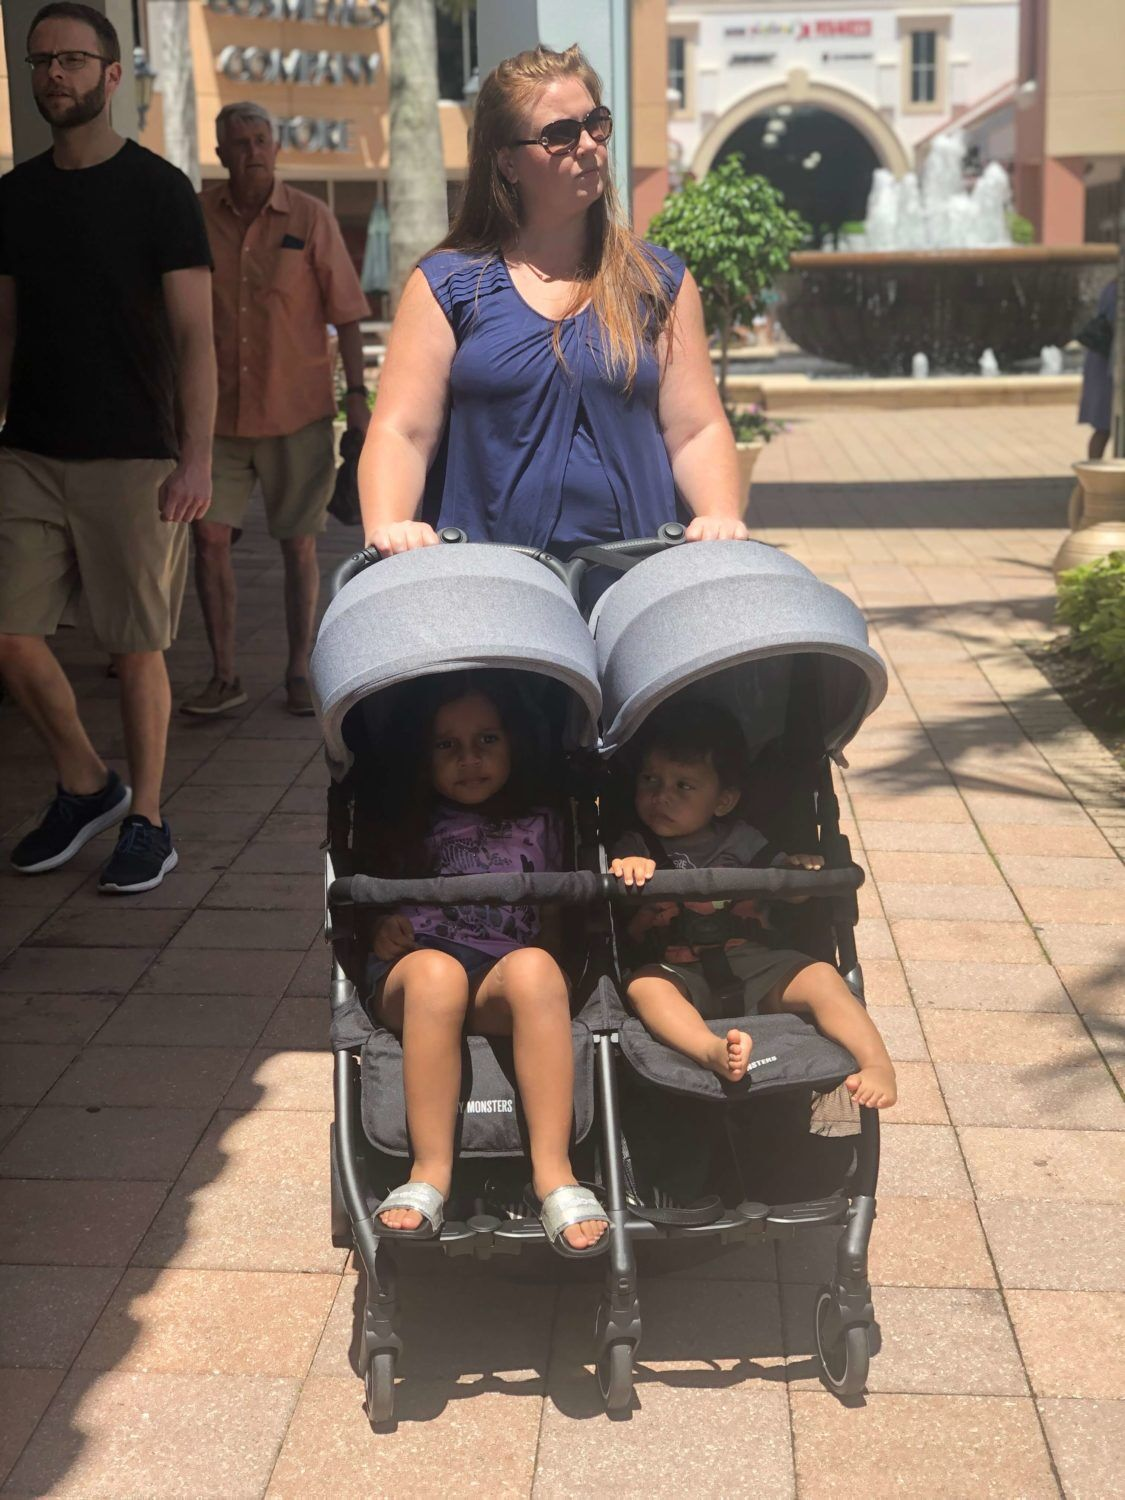 The Double Stroller That's Changing the Game: KUKI Twin Stroller by Baby Monsters ~ #KUKITwin #BabyMonsters #doublestroller #babygear